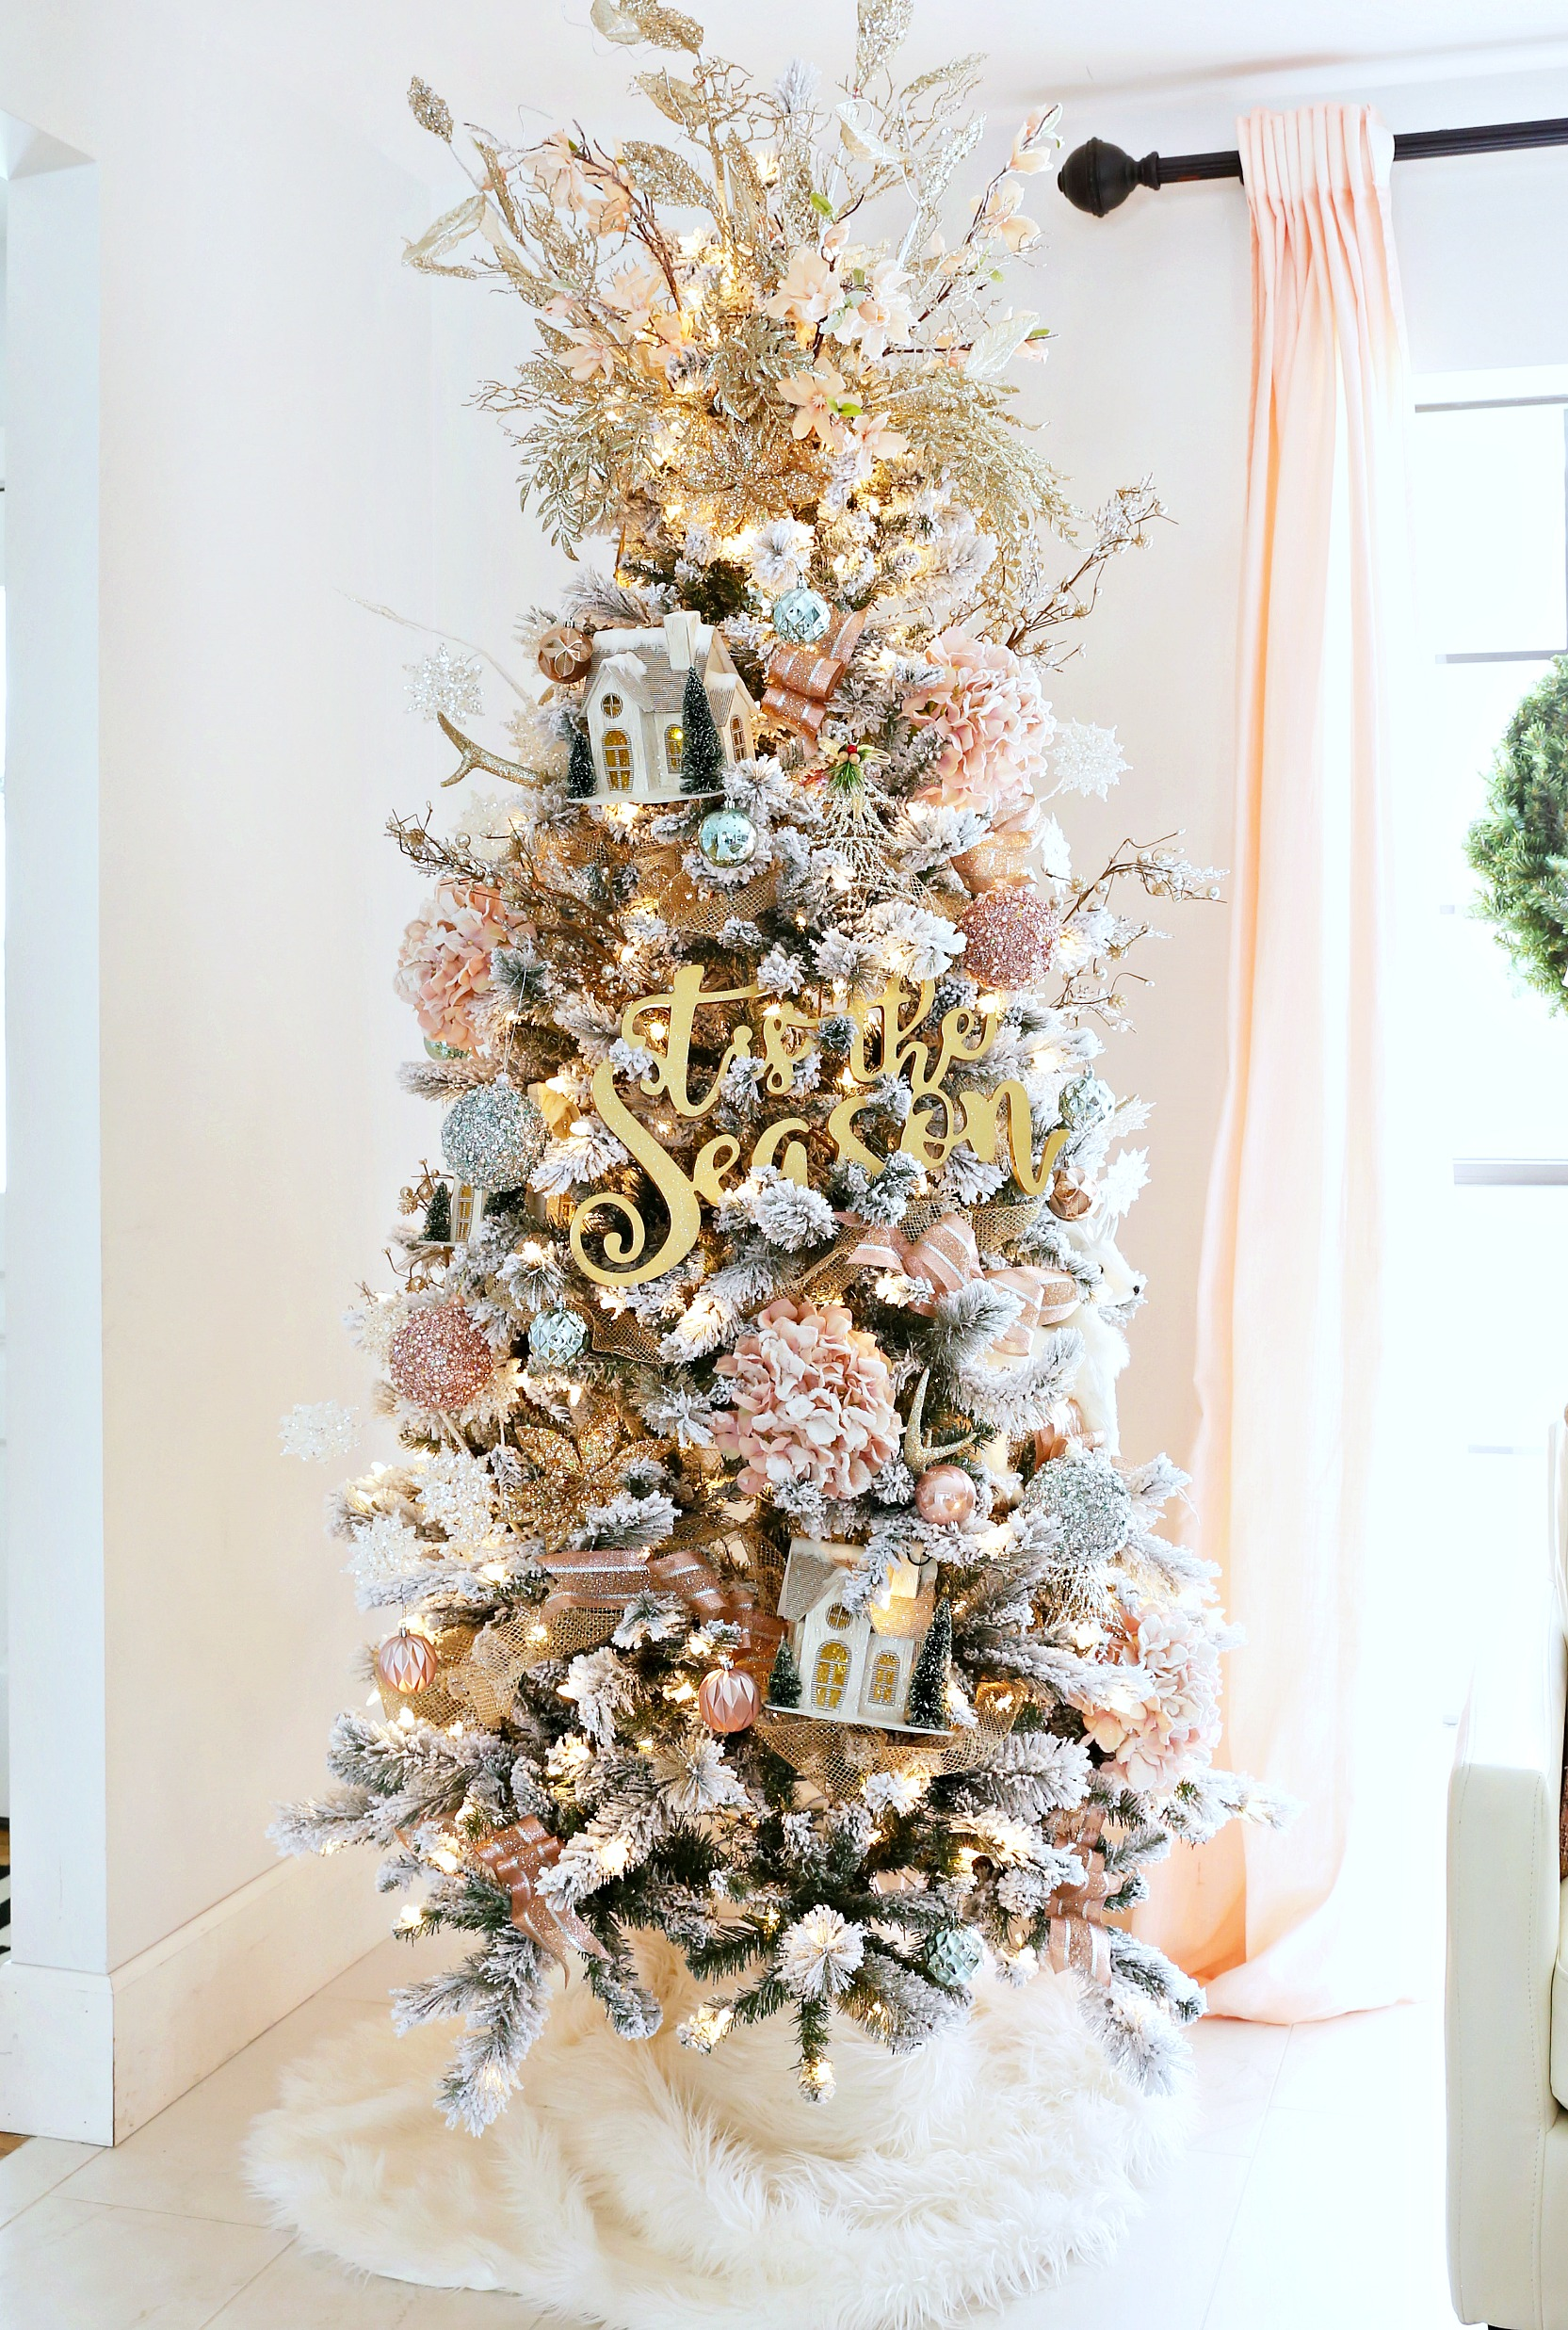 Christmas Tree Decorating Ideas.12 Christmas Tree Decorating Ideas